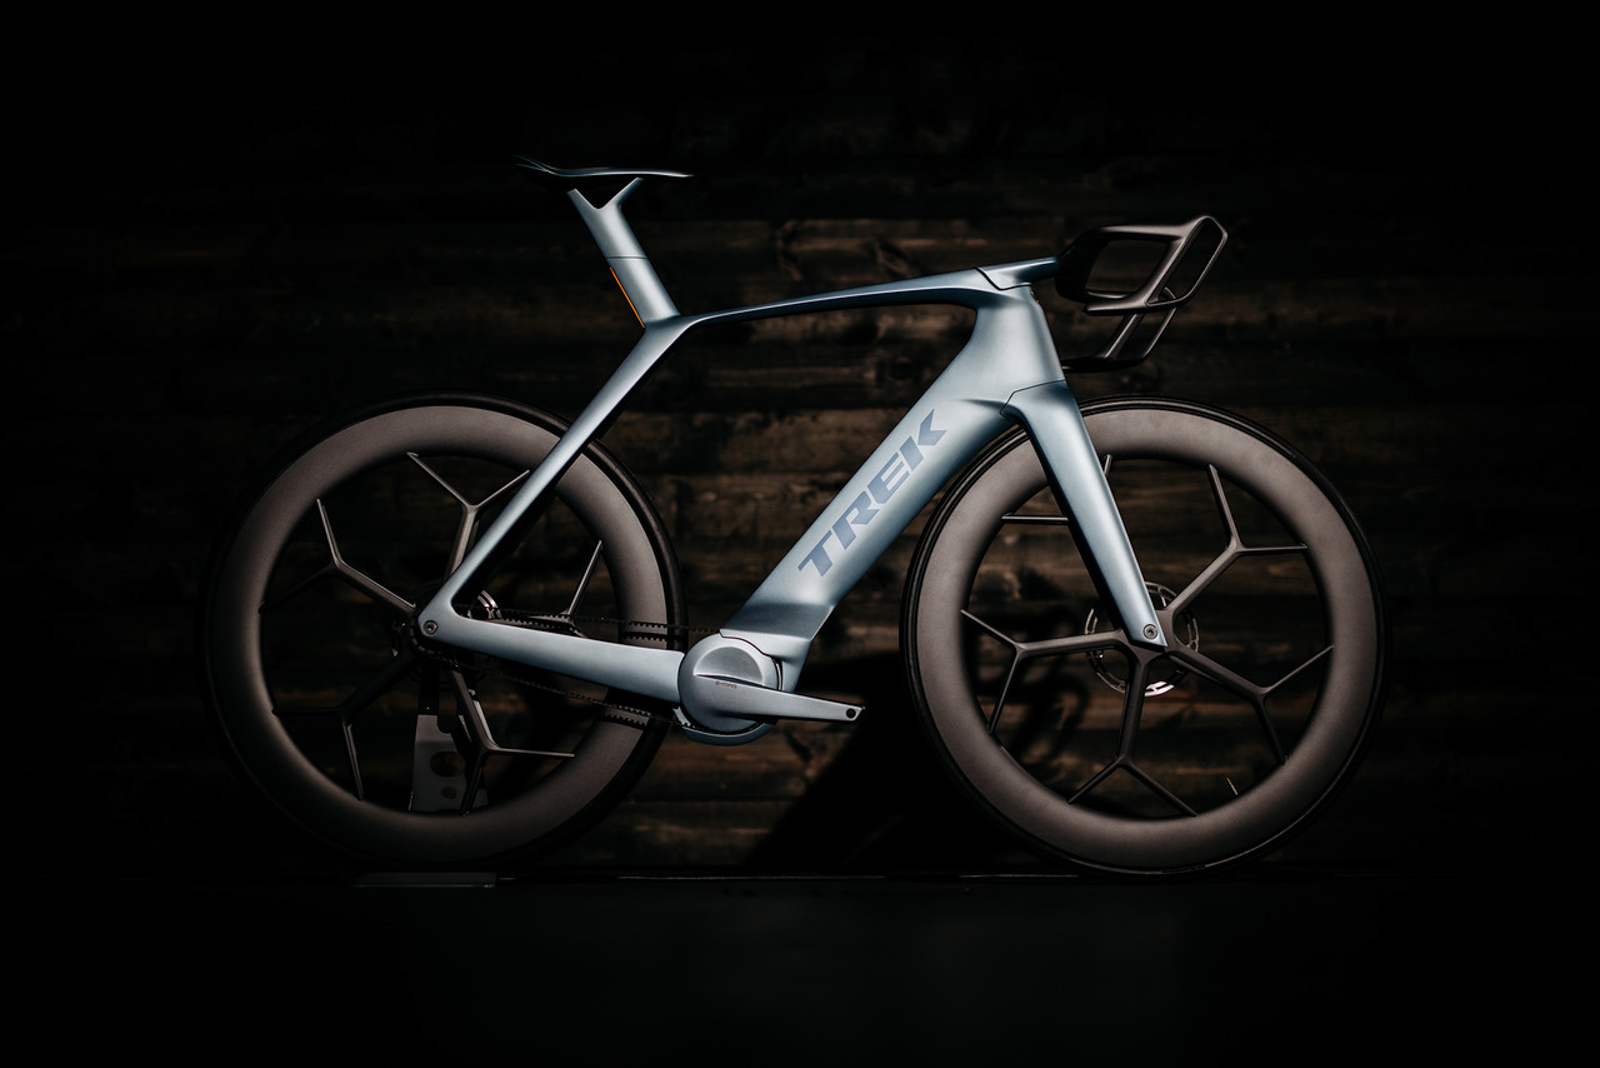 Trek's stunning 40th-anniversary concept bike bears strong familial resemblence to the current Madone. Photo: Jeff Kennel.